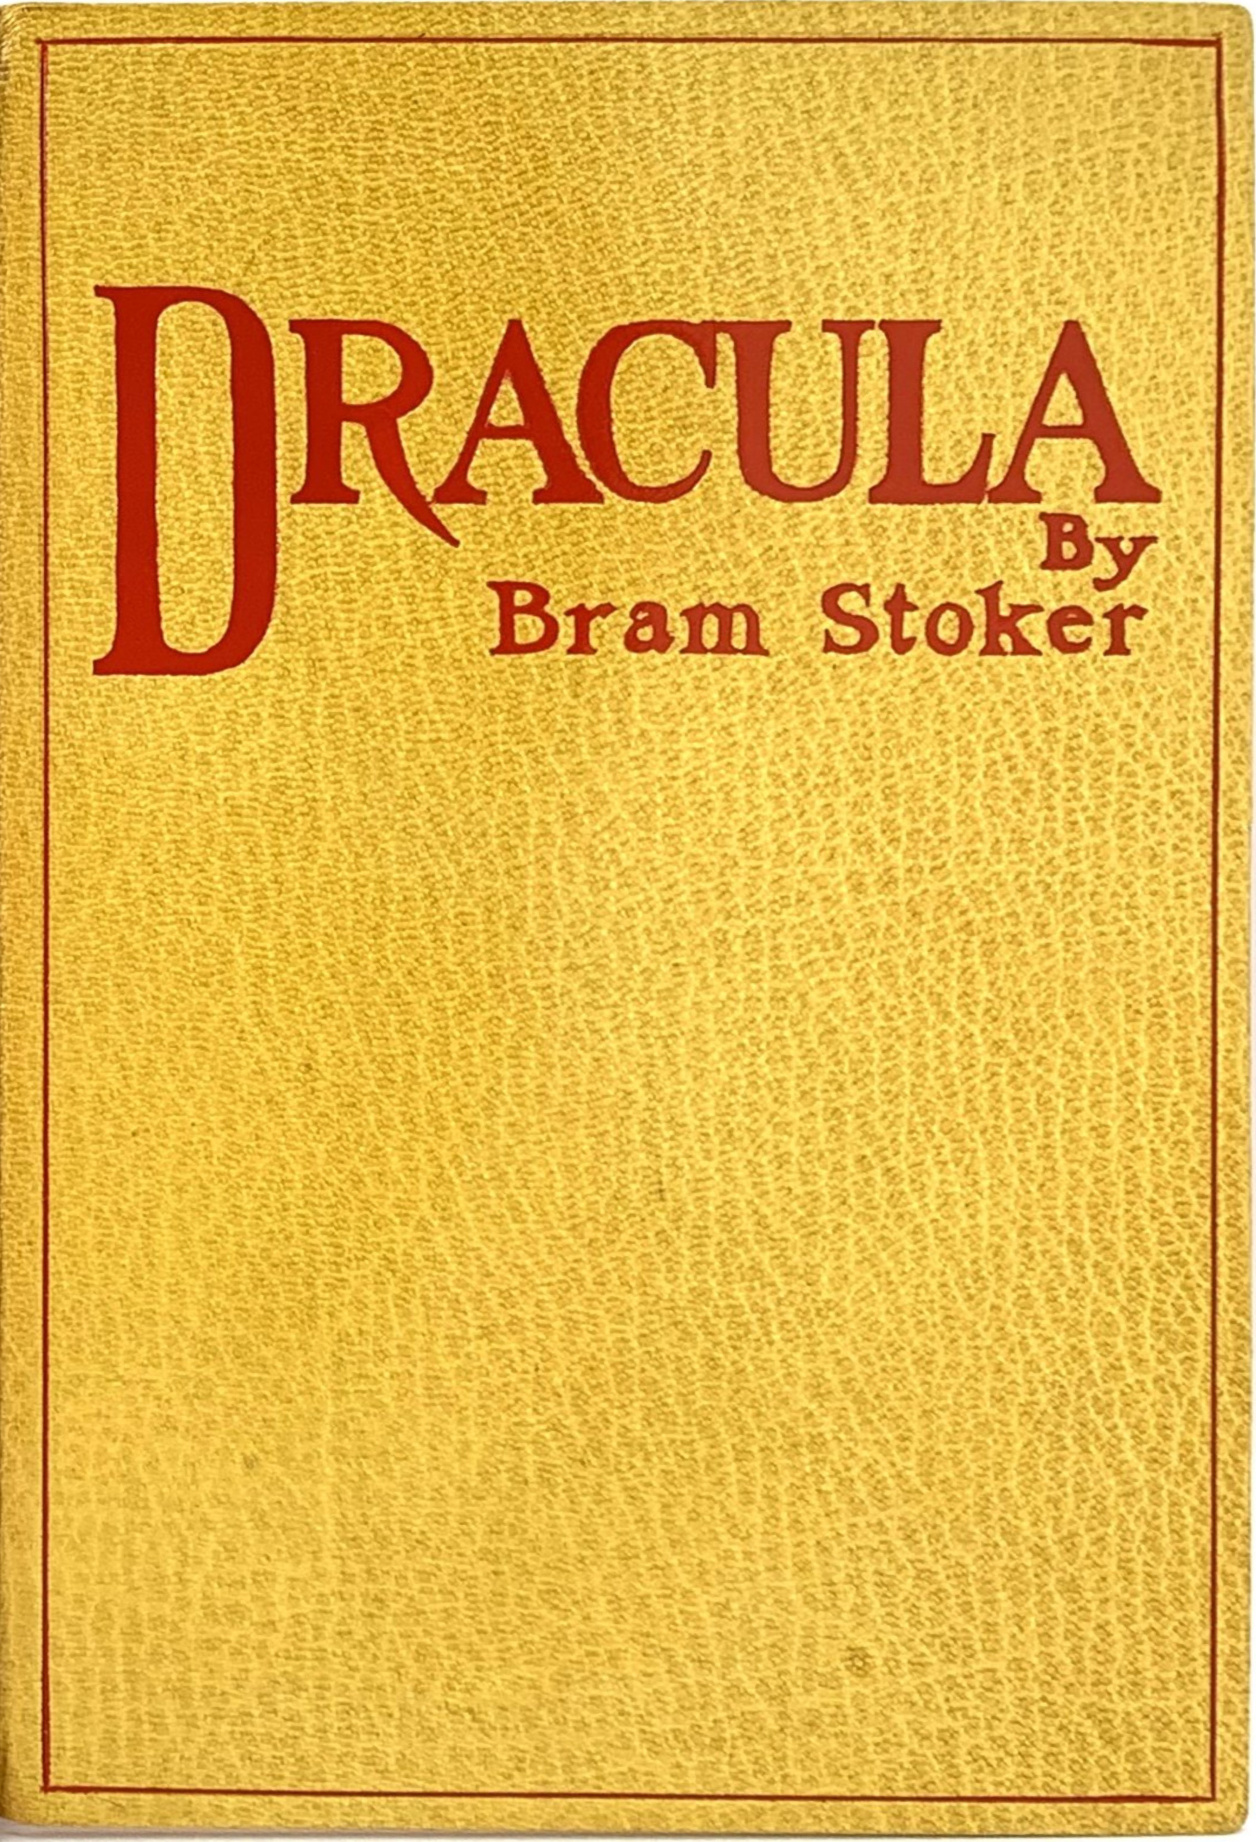 share_ebook Dracula Bram Stoker